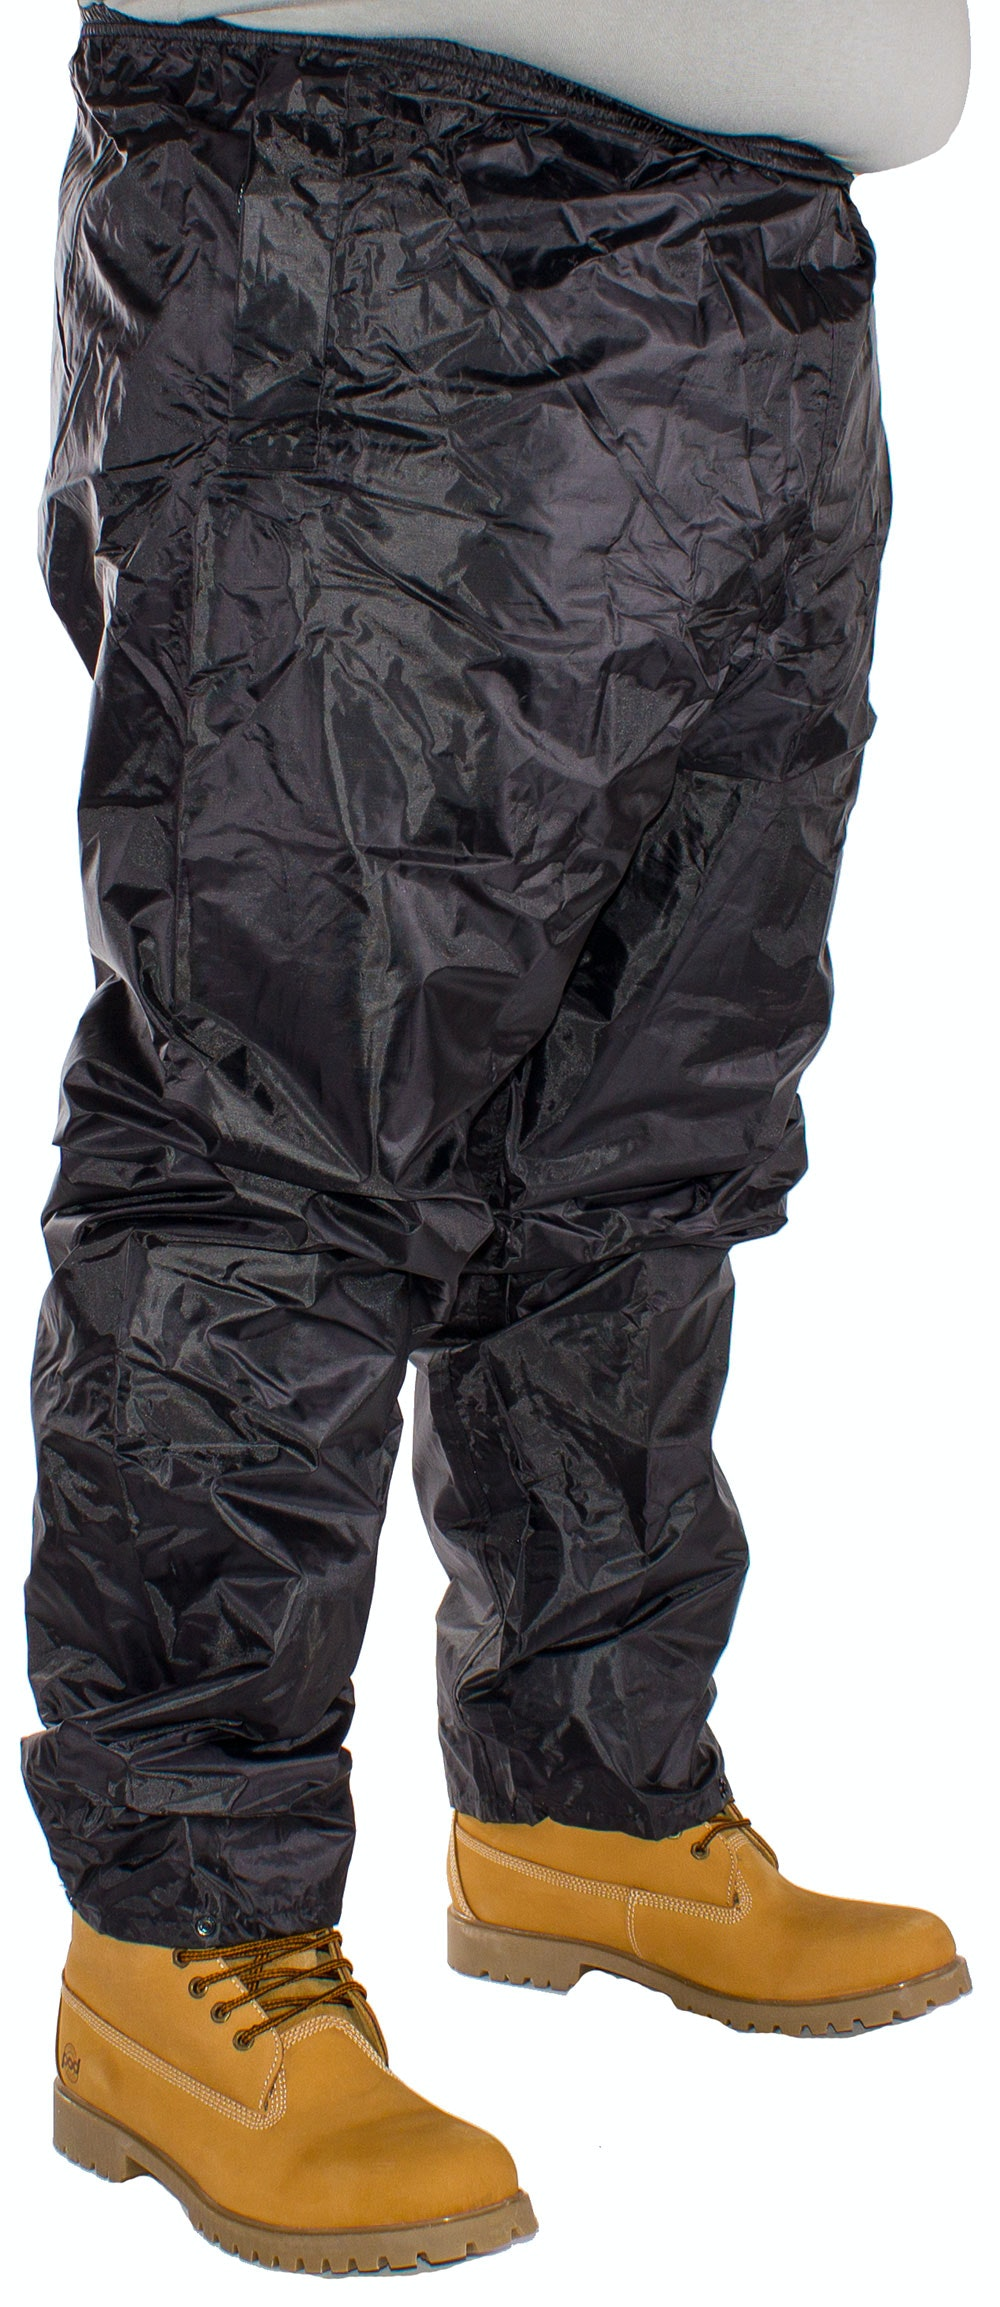 Baum Waterproof Trousers Black